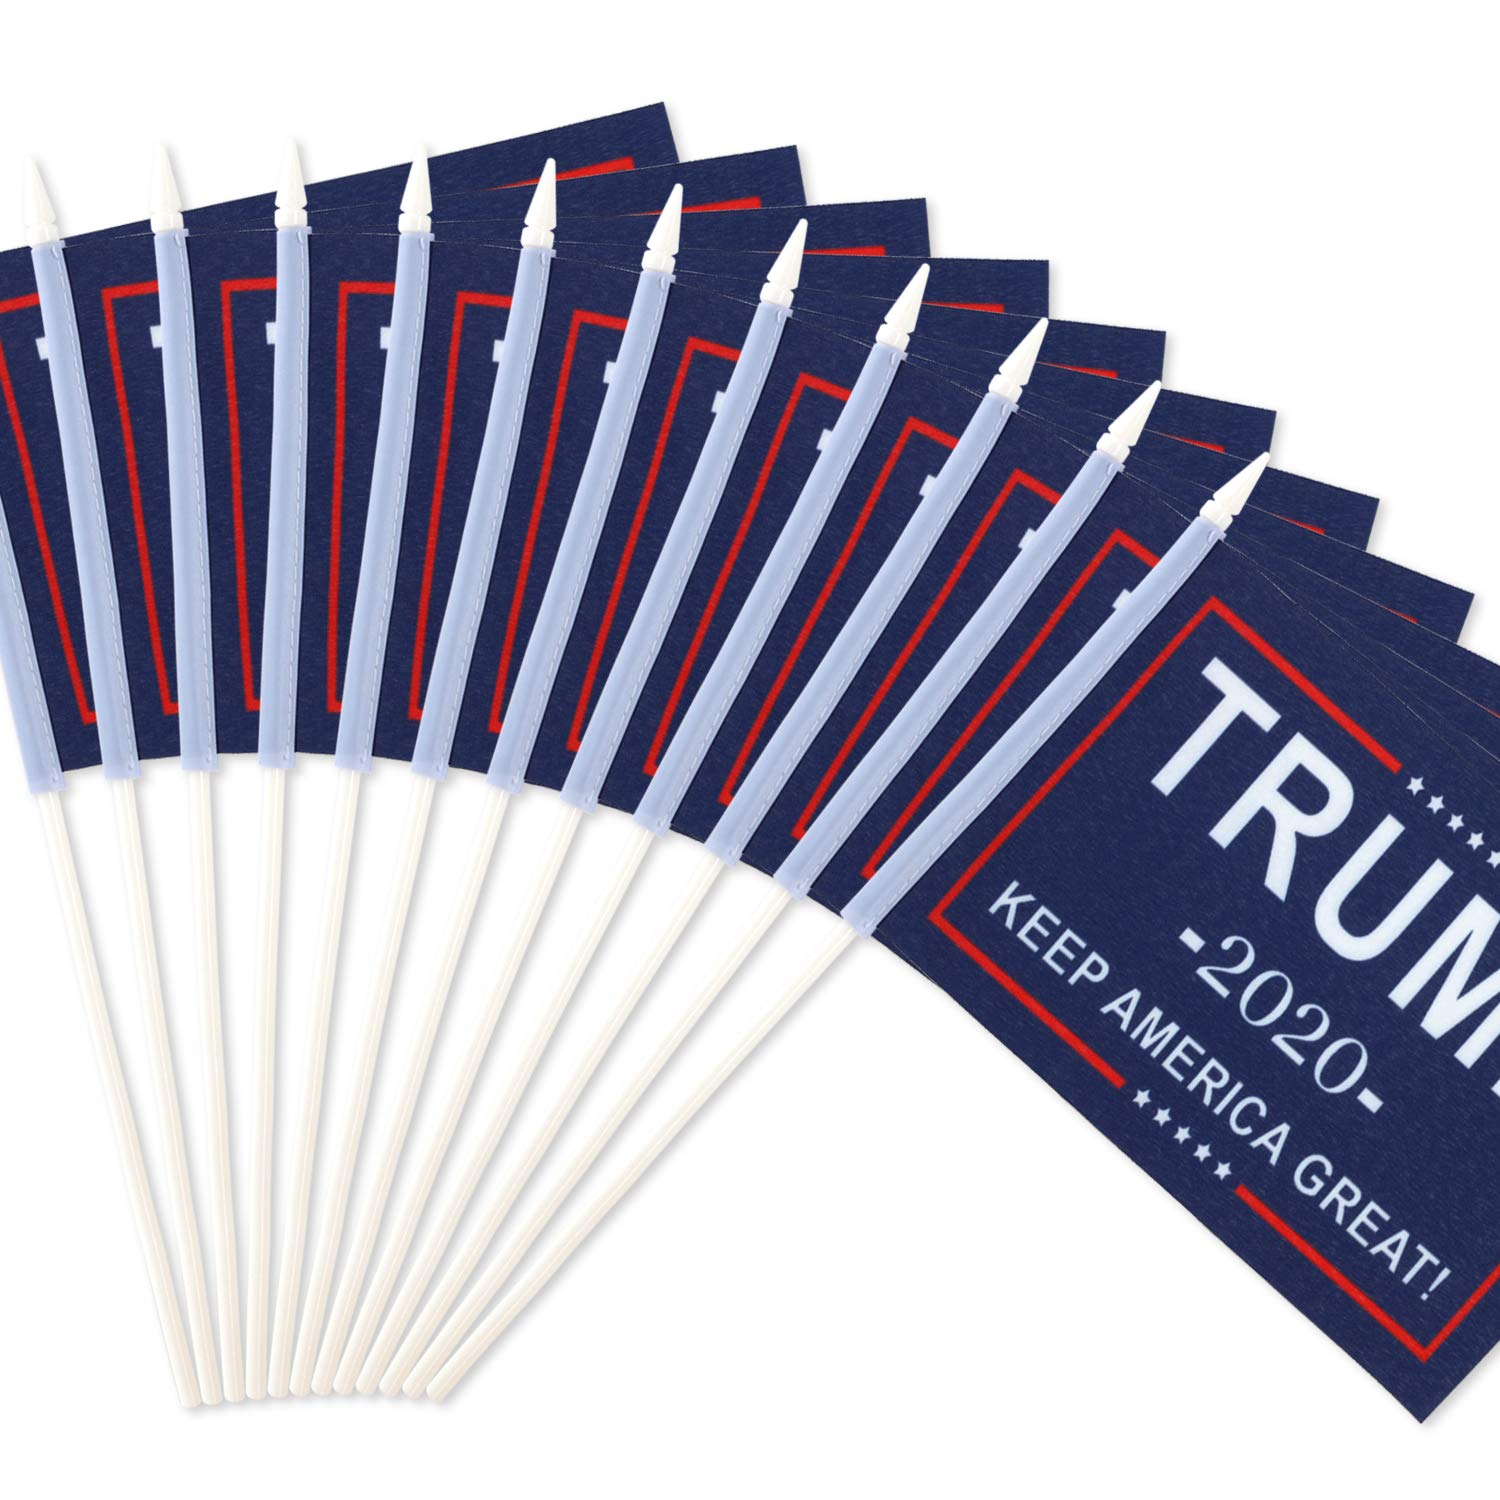 """Anley Donald Trump President 2020 Keep America Great Miniature Flag, 5x8 inches Handheld Stick Flag with 12"""" White Solid Pole - Vivid Color and Fade Resistant - Mini Flags with Spear Top (1 Dozen)"""